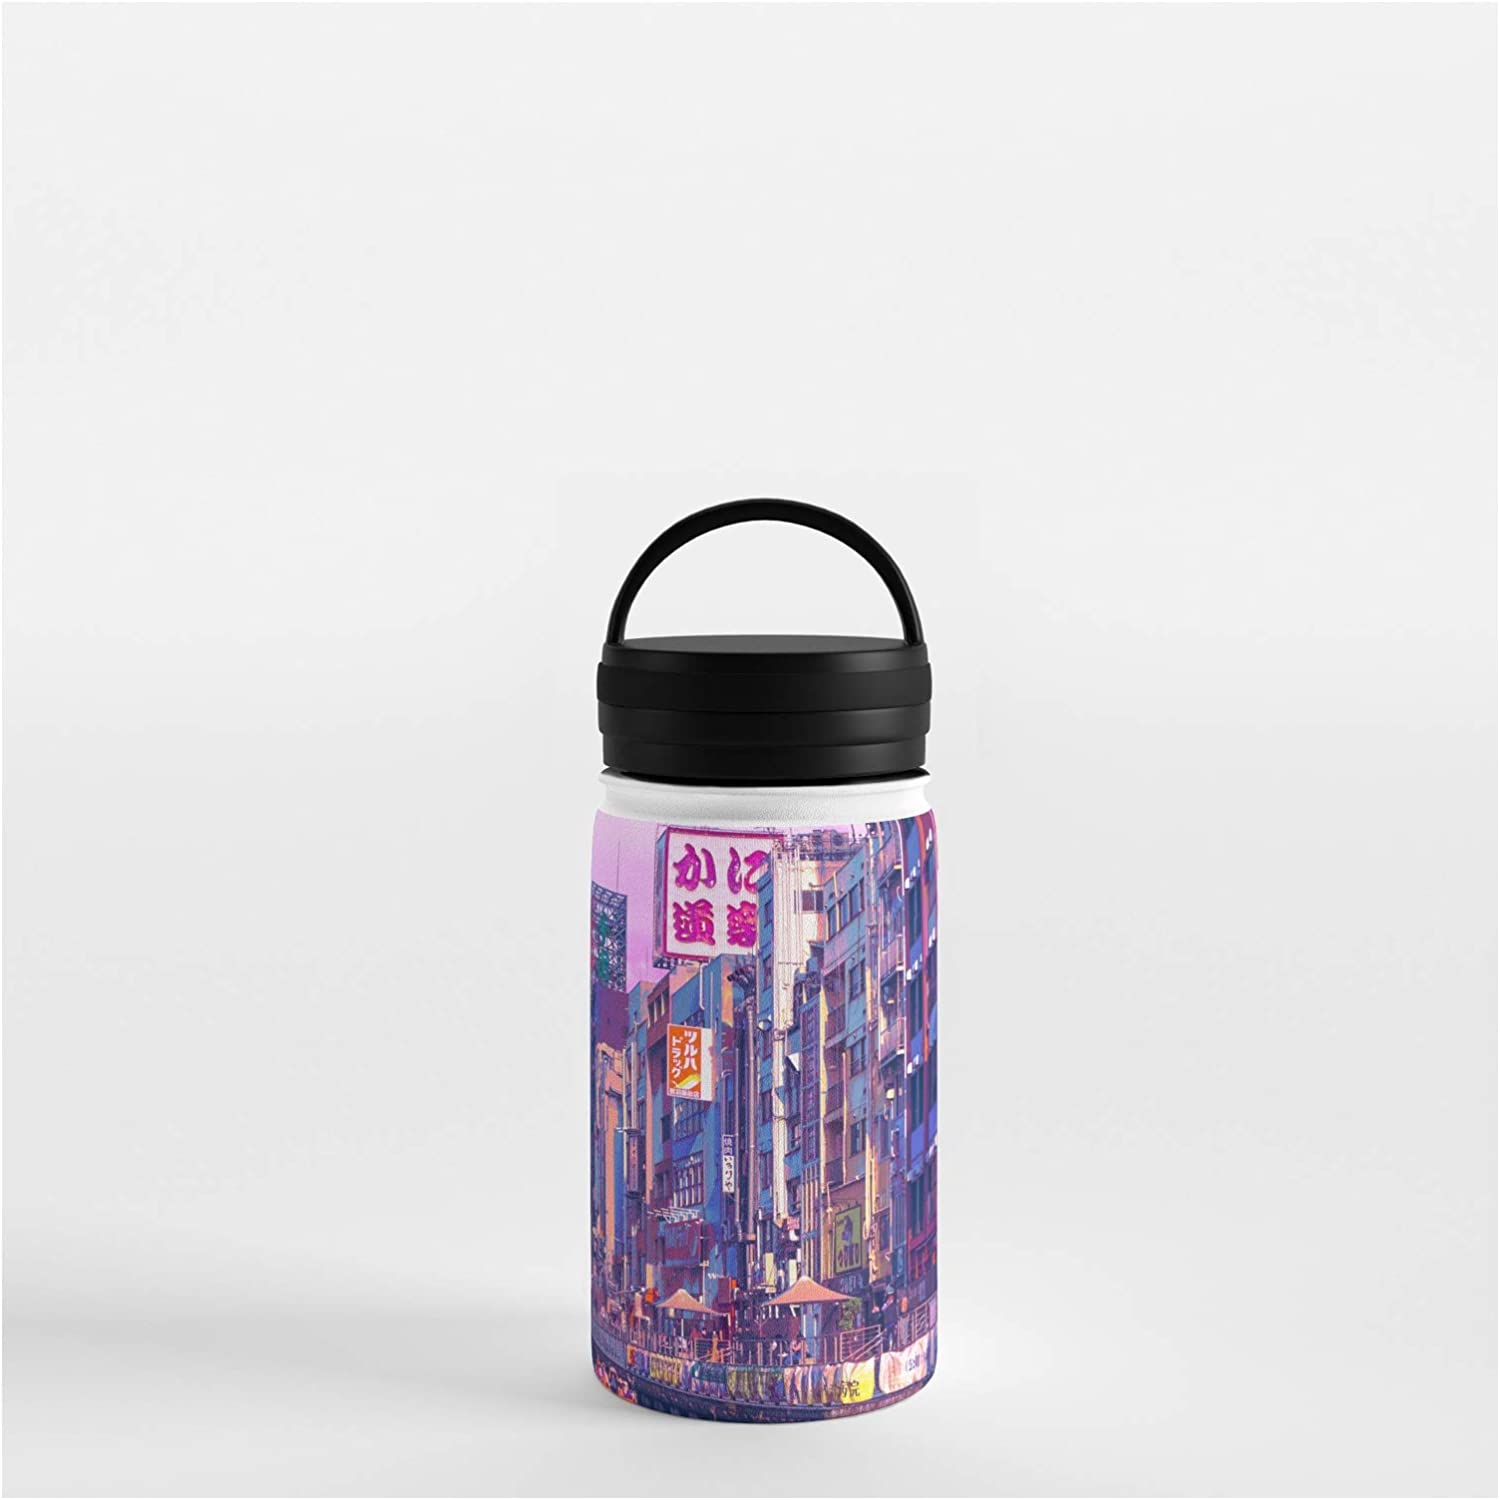 Over item handling Sale special price Society6 Osaka Citypop by Surudenise on Water Bottle - 12 oz 356